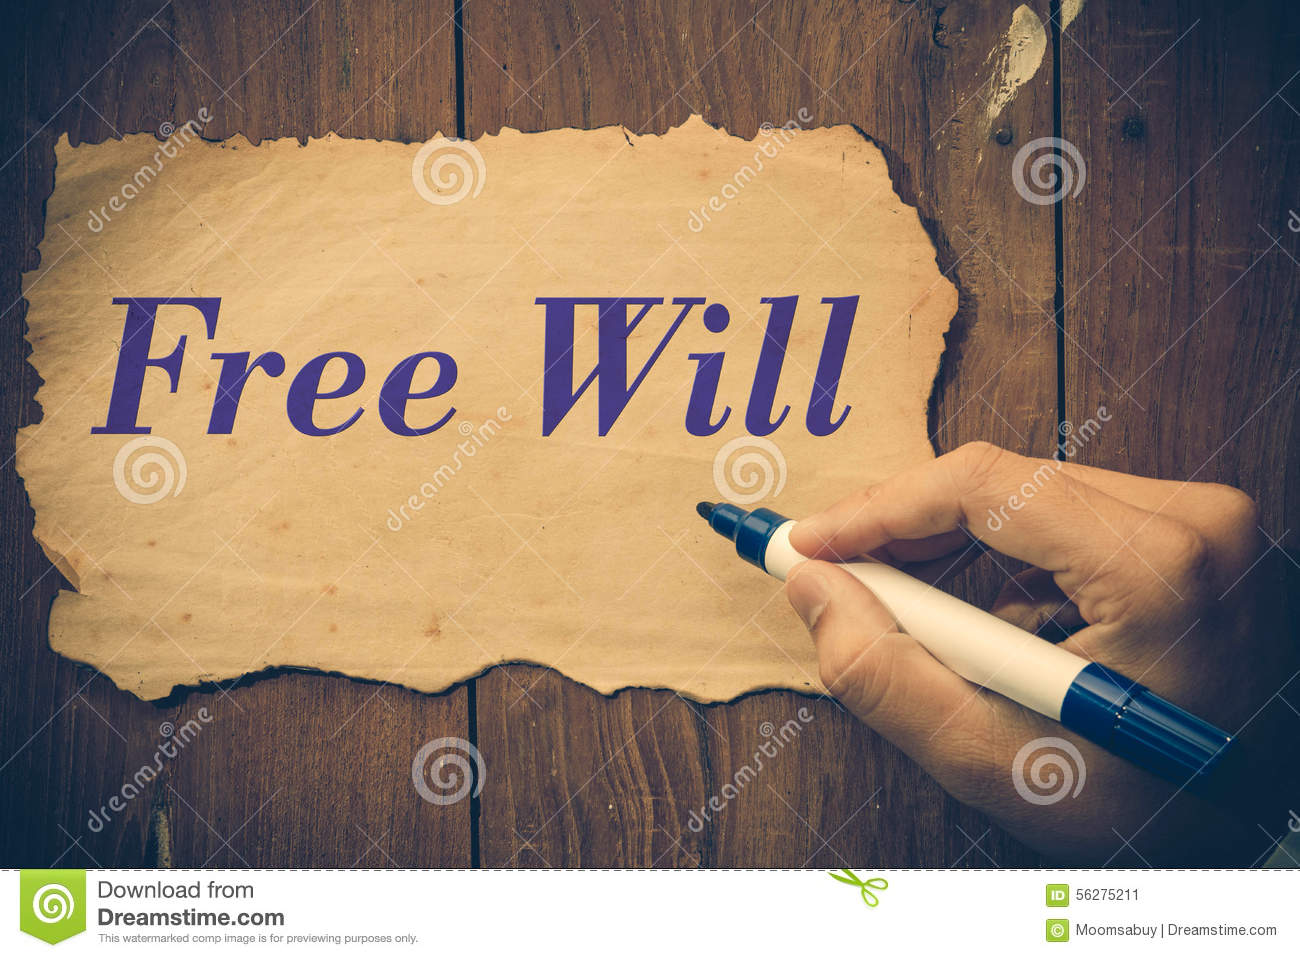 free-will-text-write-paper-note-56275211[1]